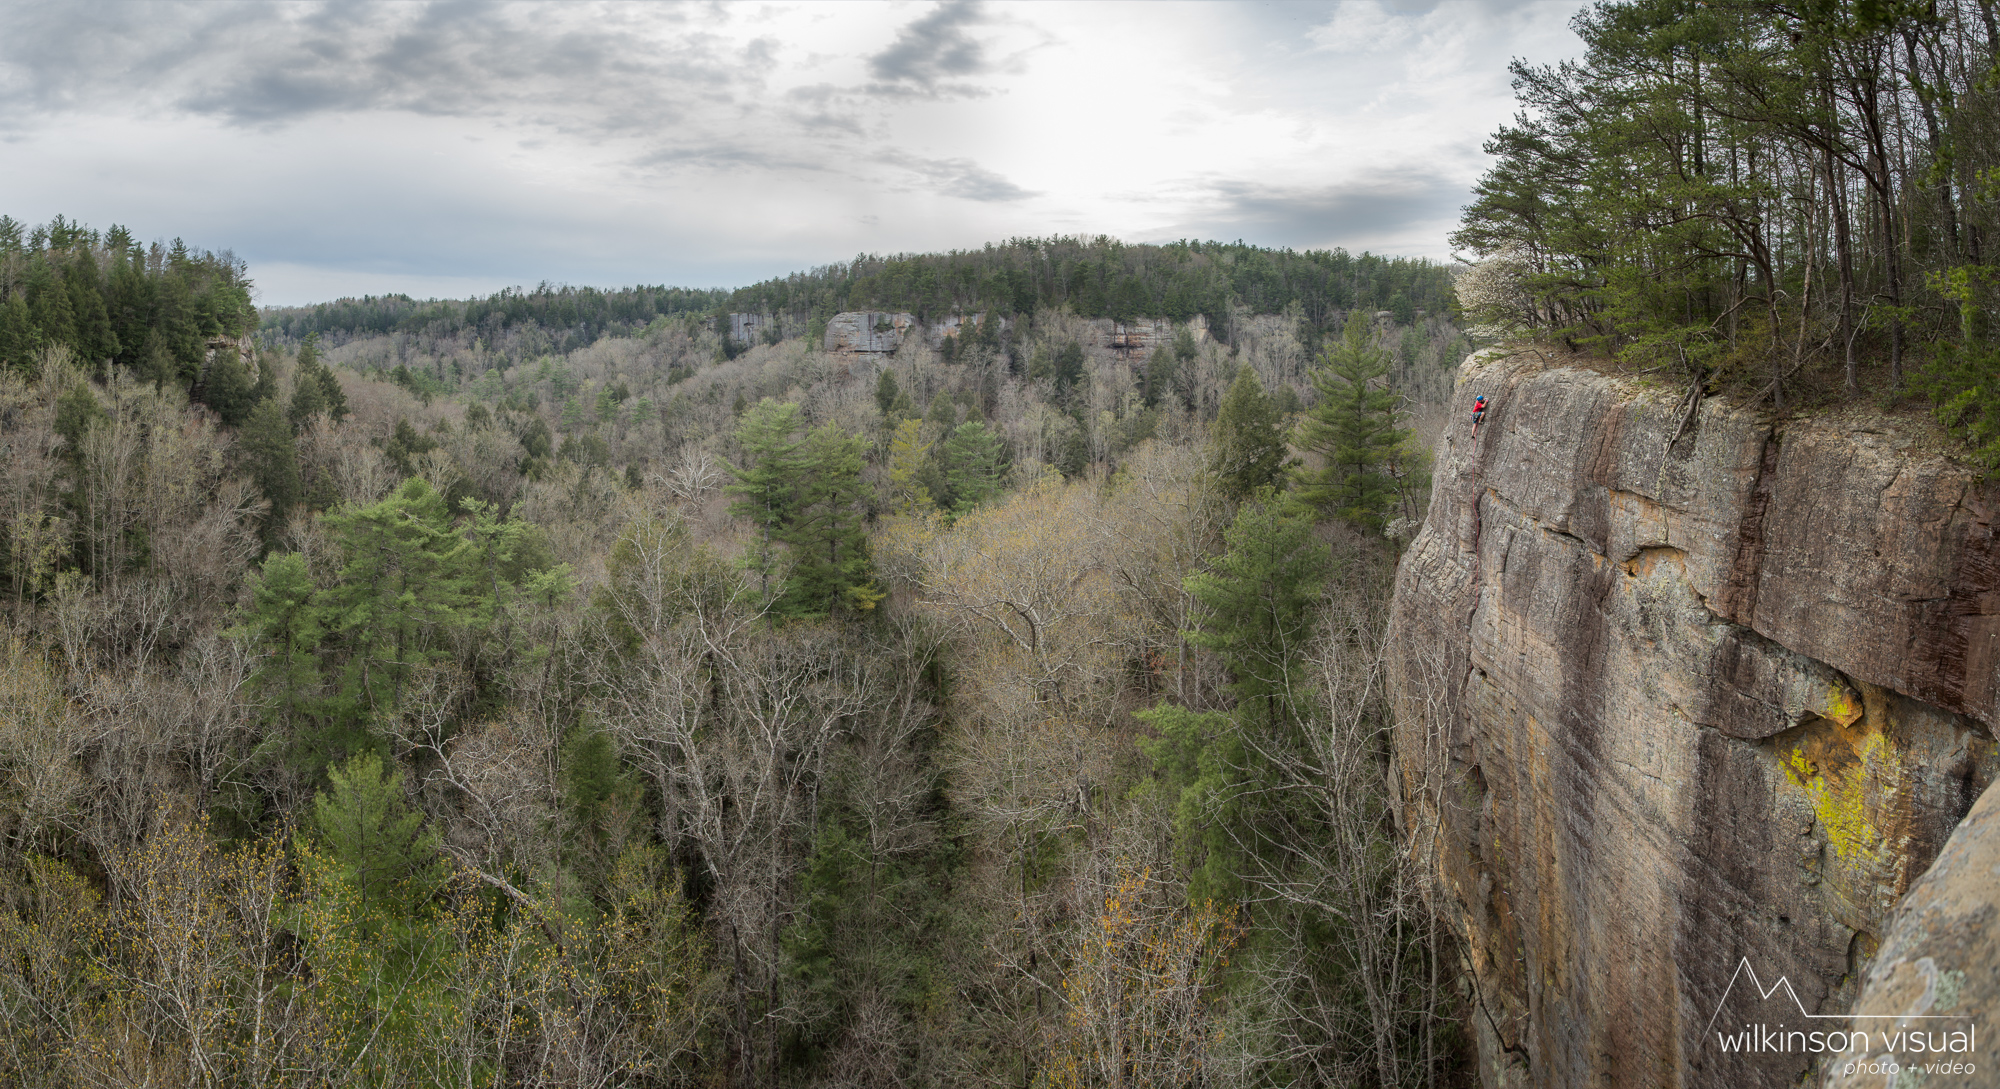 Panorama stitch of several high res images. Geoff Ris climbs a backcountry trad route deep in the Daniel Boone National Forest of Kentucky. Rope shown is Beal.